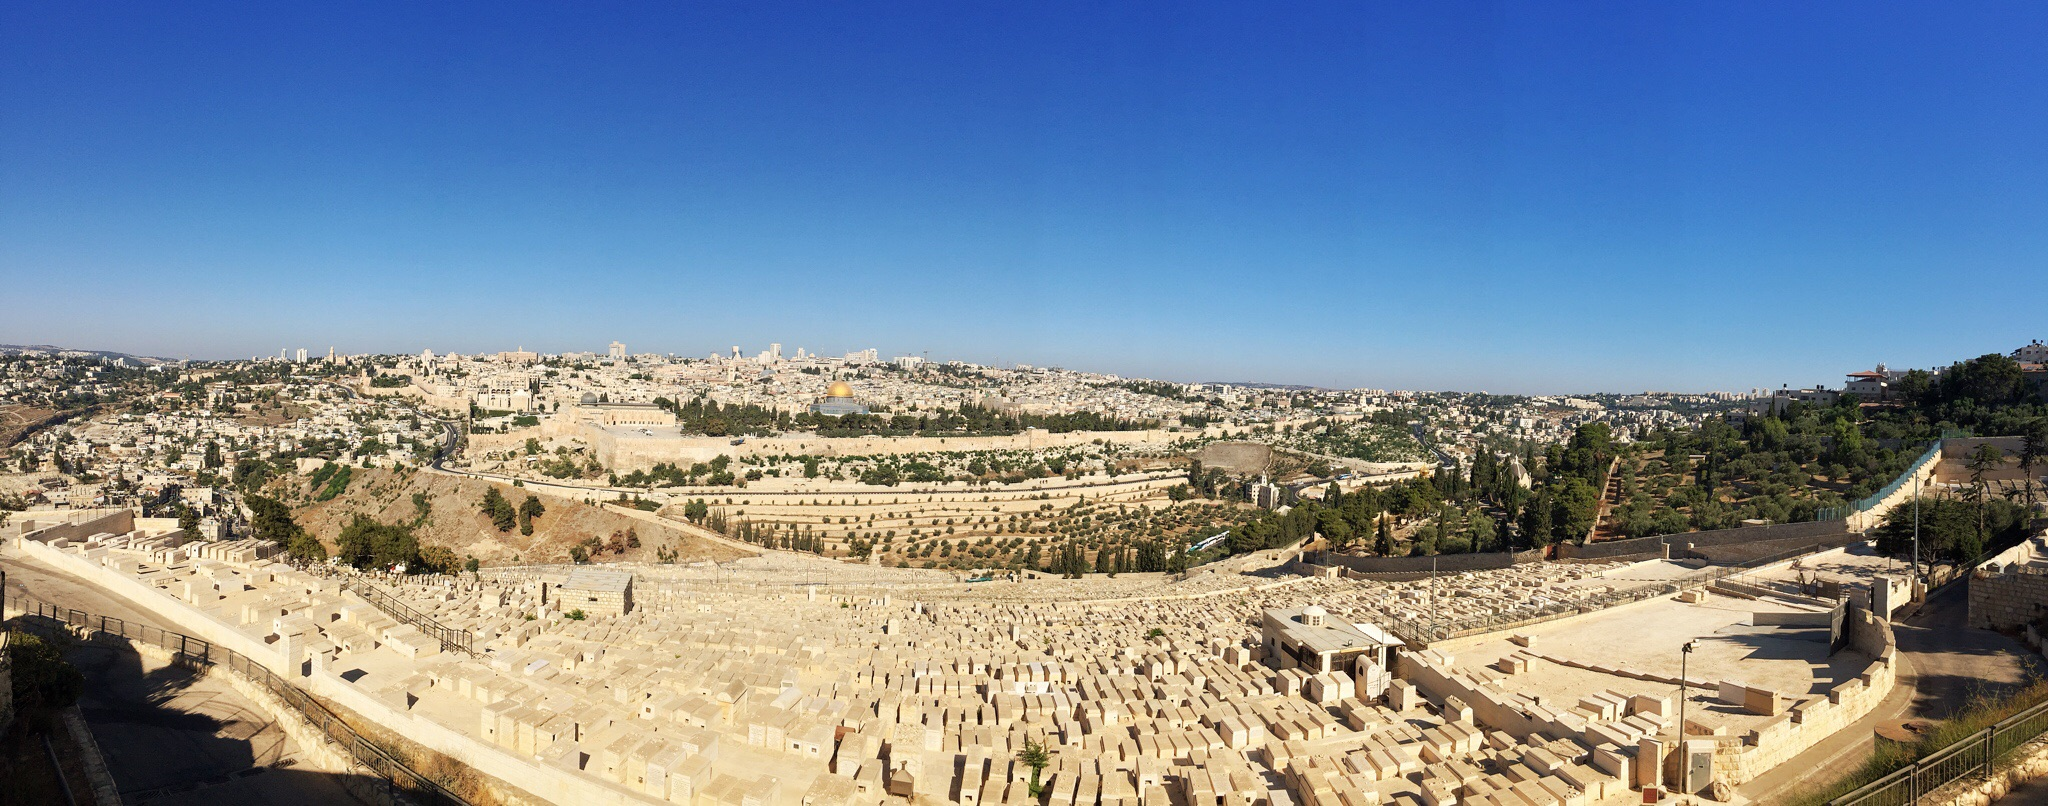 The sun rises on Jerusalem from the Mount of Olives.